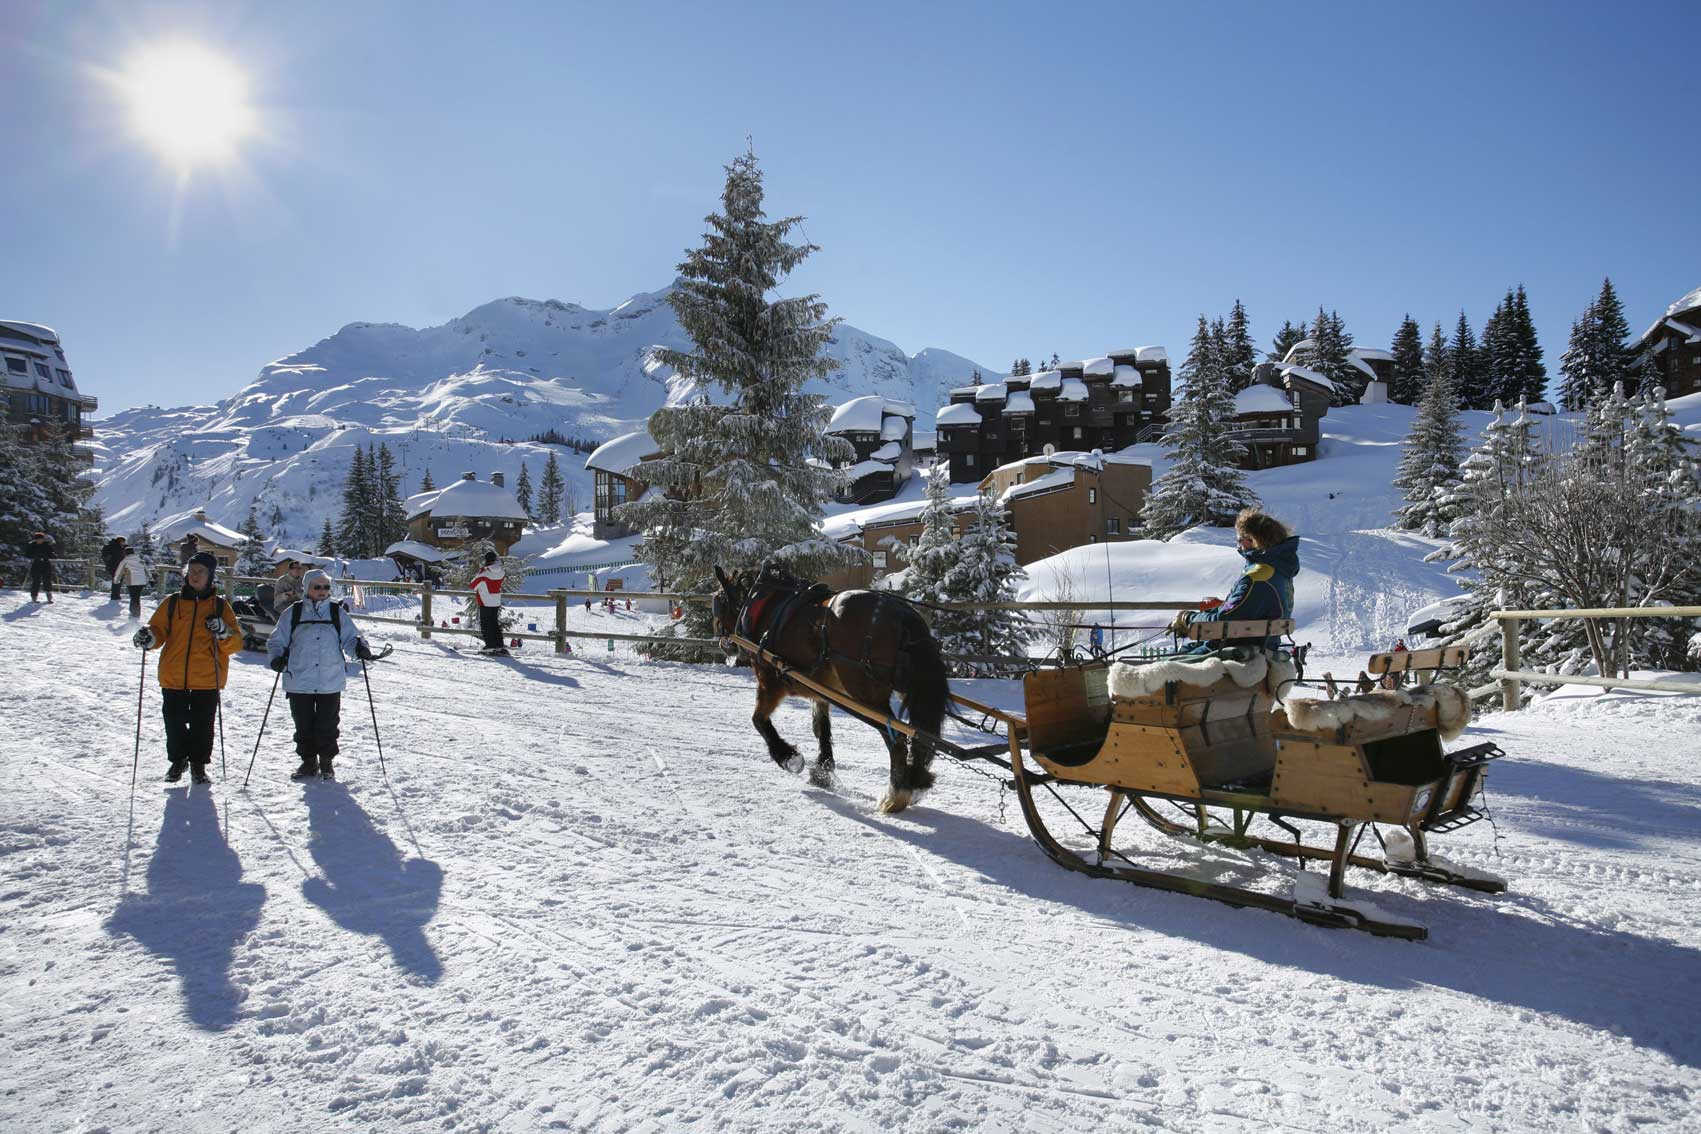 Horse and Sleigh in pedestrianised Avoriaz